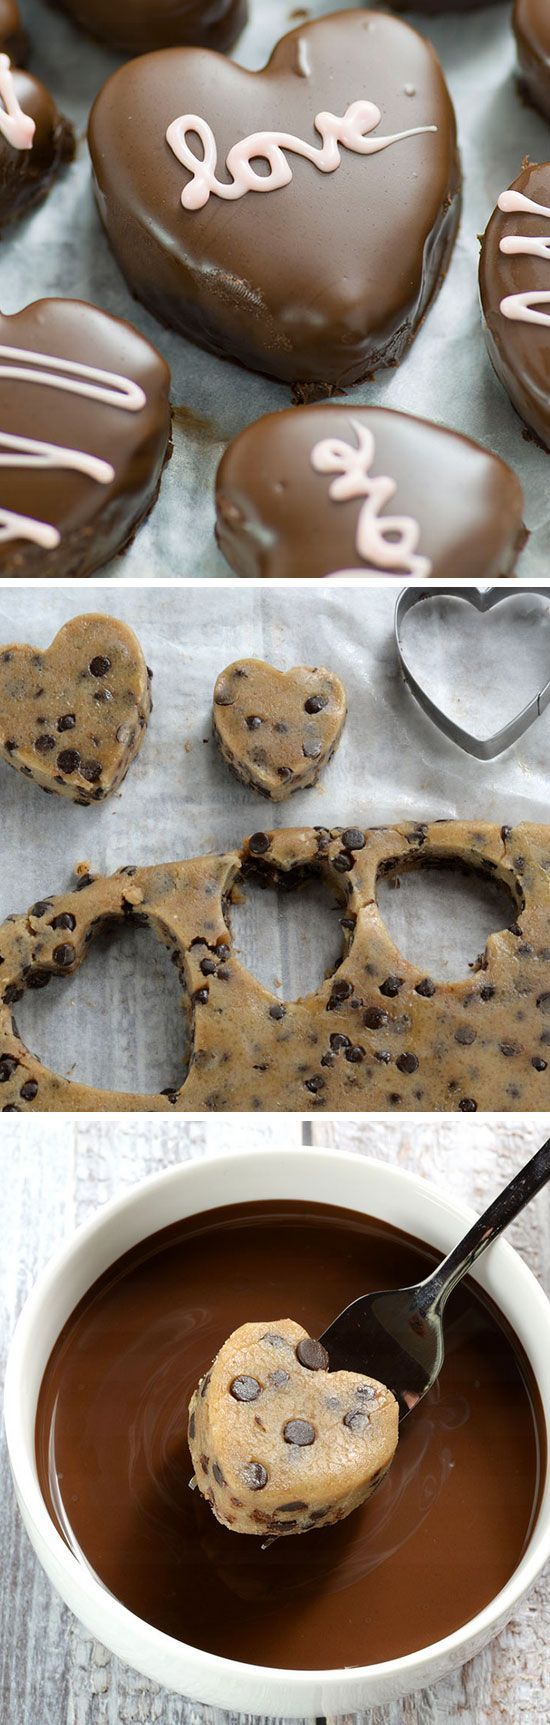 Chocolate Chip Cookie Dough Valentine's Hearts | Easy Valentine Dessert Ideas for Him | Romantic Desserts for Two Date Nights